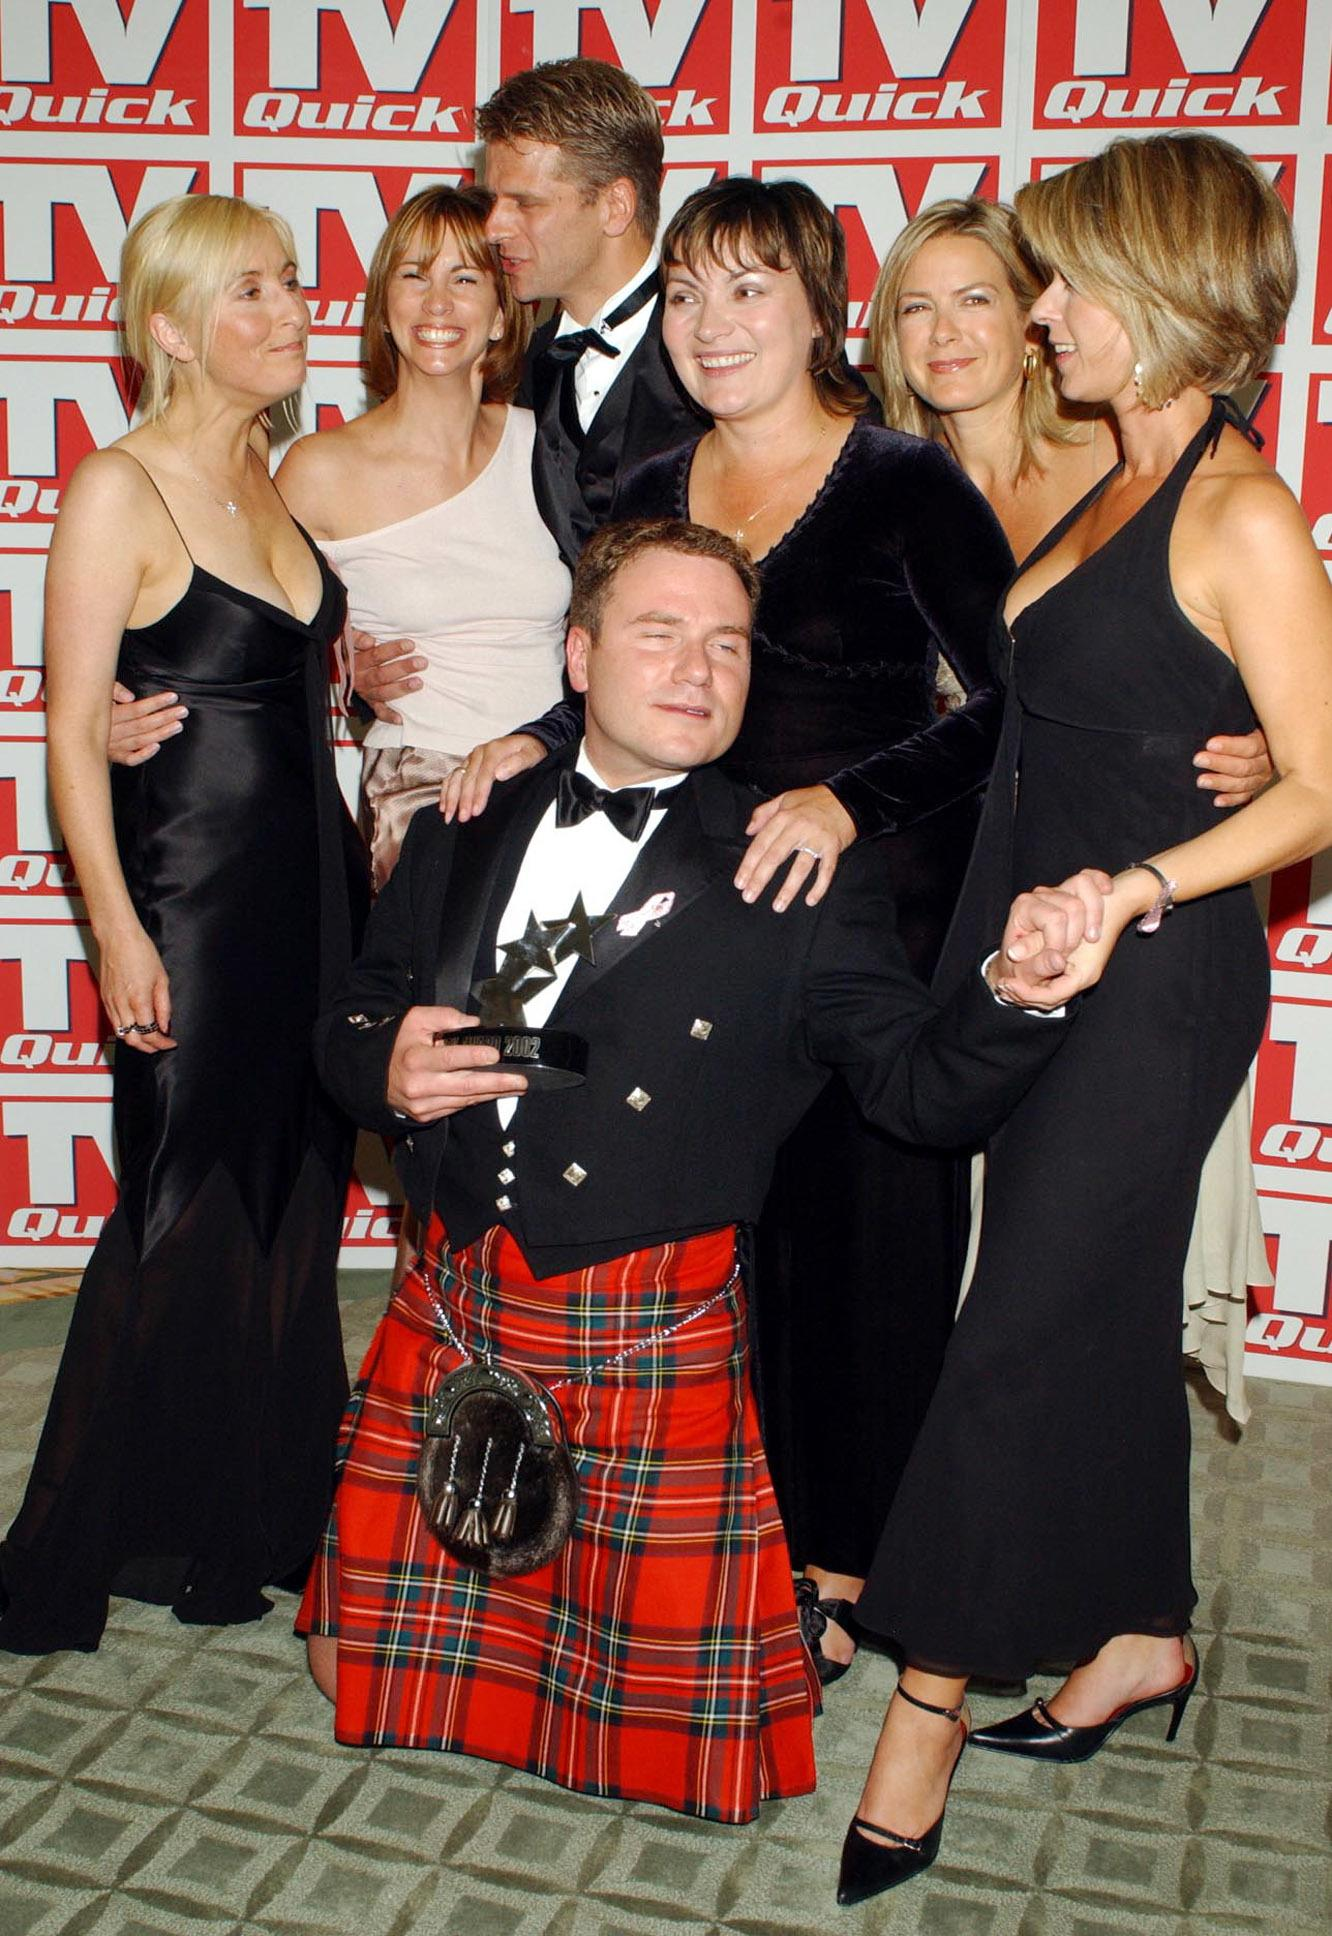 GMTV presenters with their award at the TV Quick Awards at the Dorchester Hotel in London. (L-R) Fiona Phillips, Andrea McLean, Andrew Castle, Richard Arnold (on floor), Lorraine Kelly Penny Smith, and Kate Garraway.